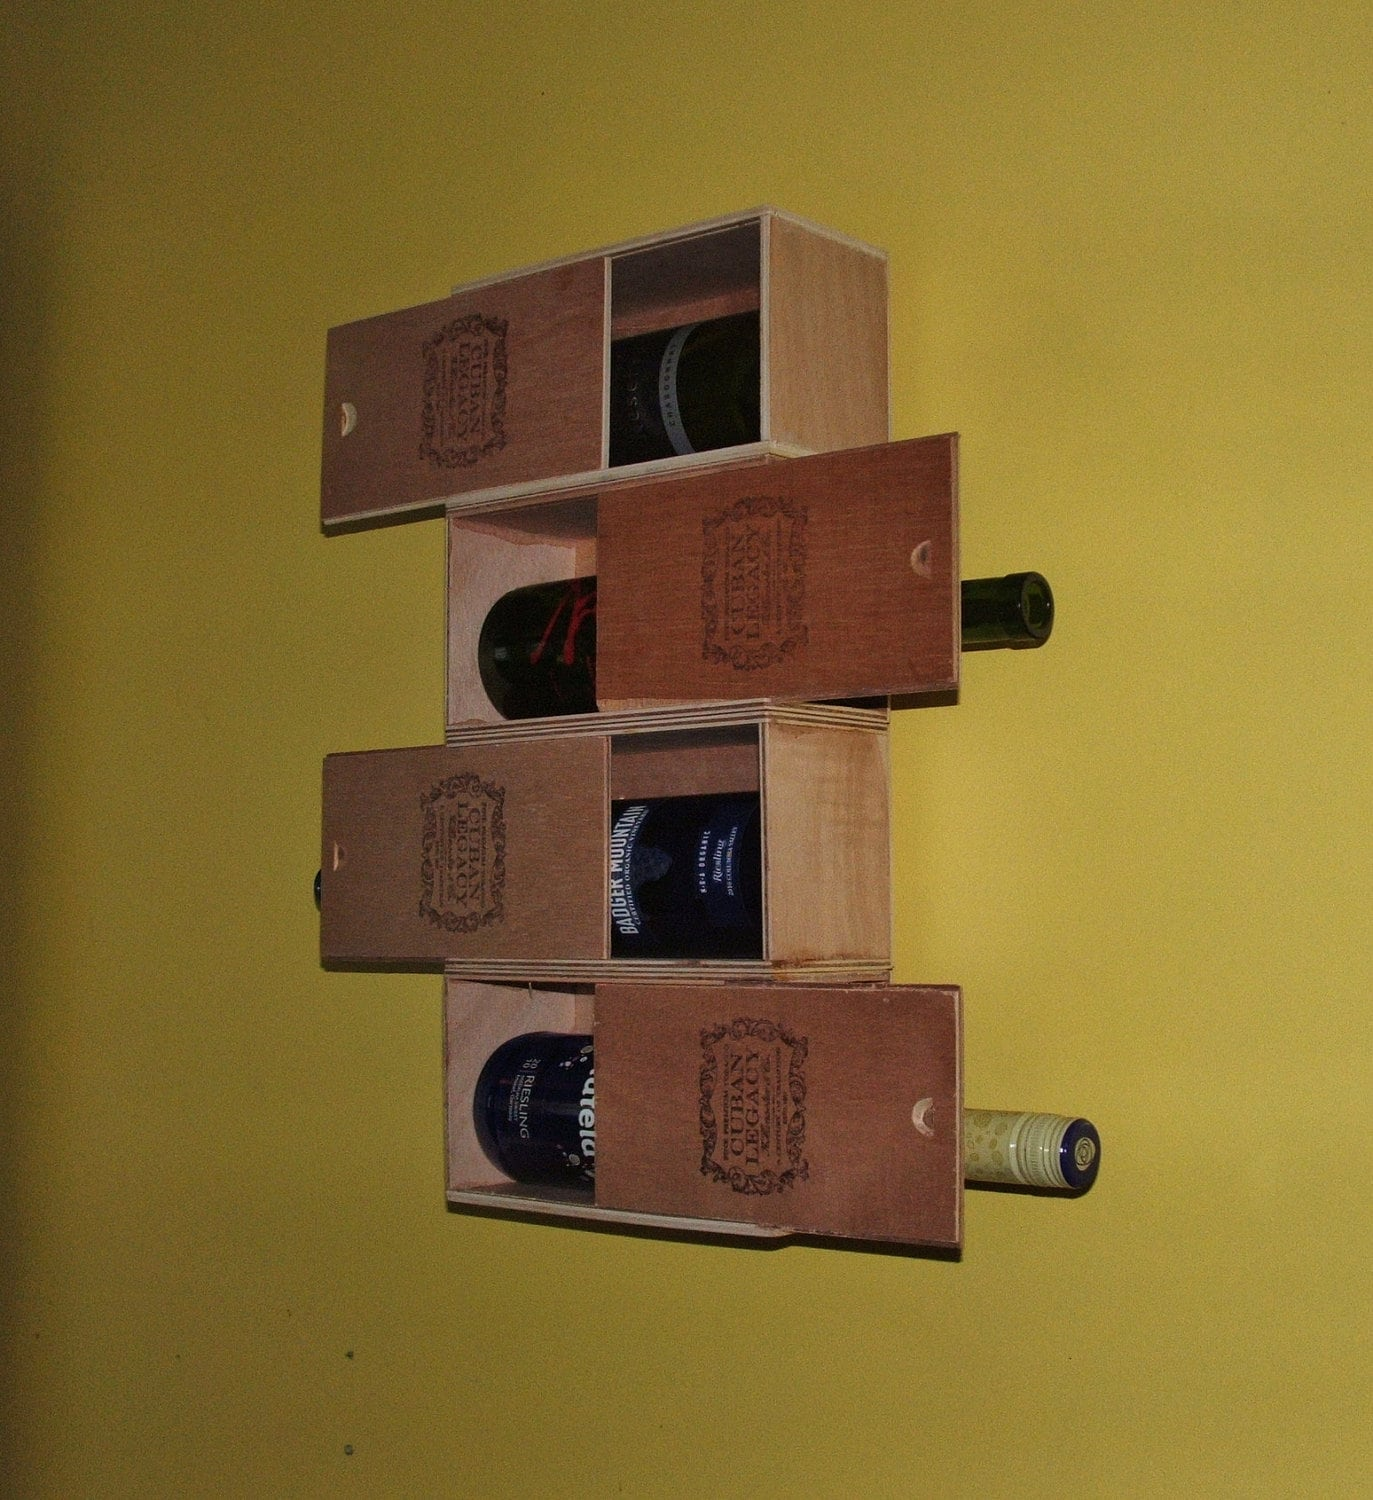 Cuban cigar box wine rack recycled and repurposed home d cor for Cigar boxes for crafts